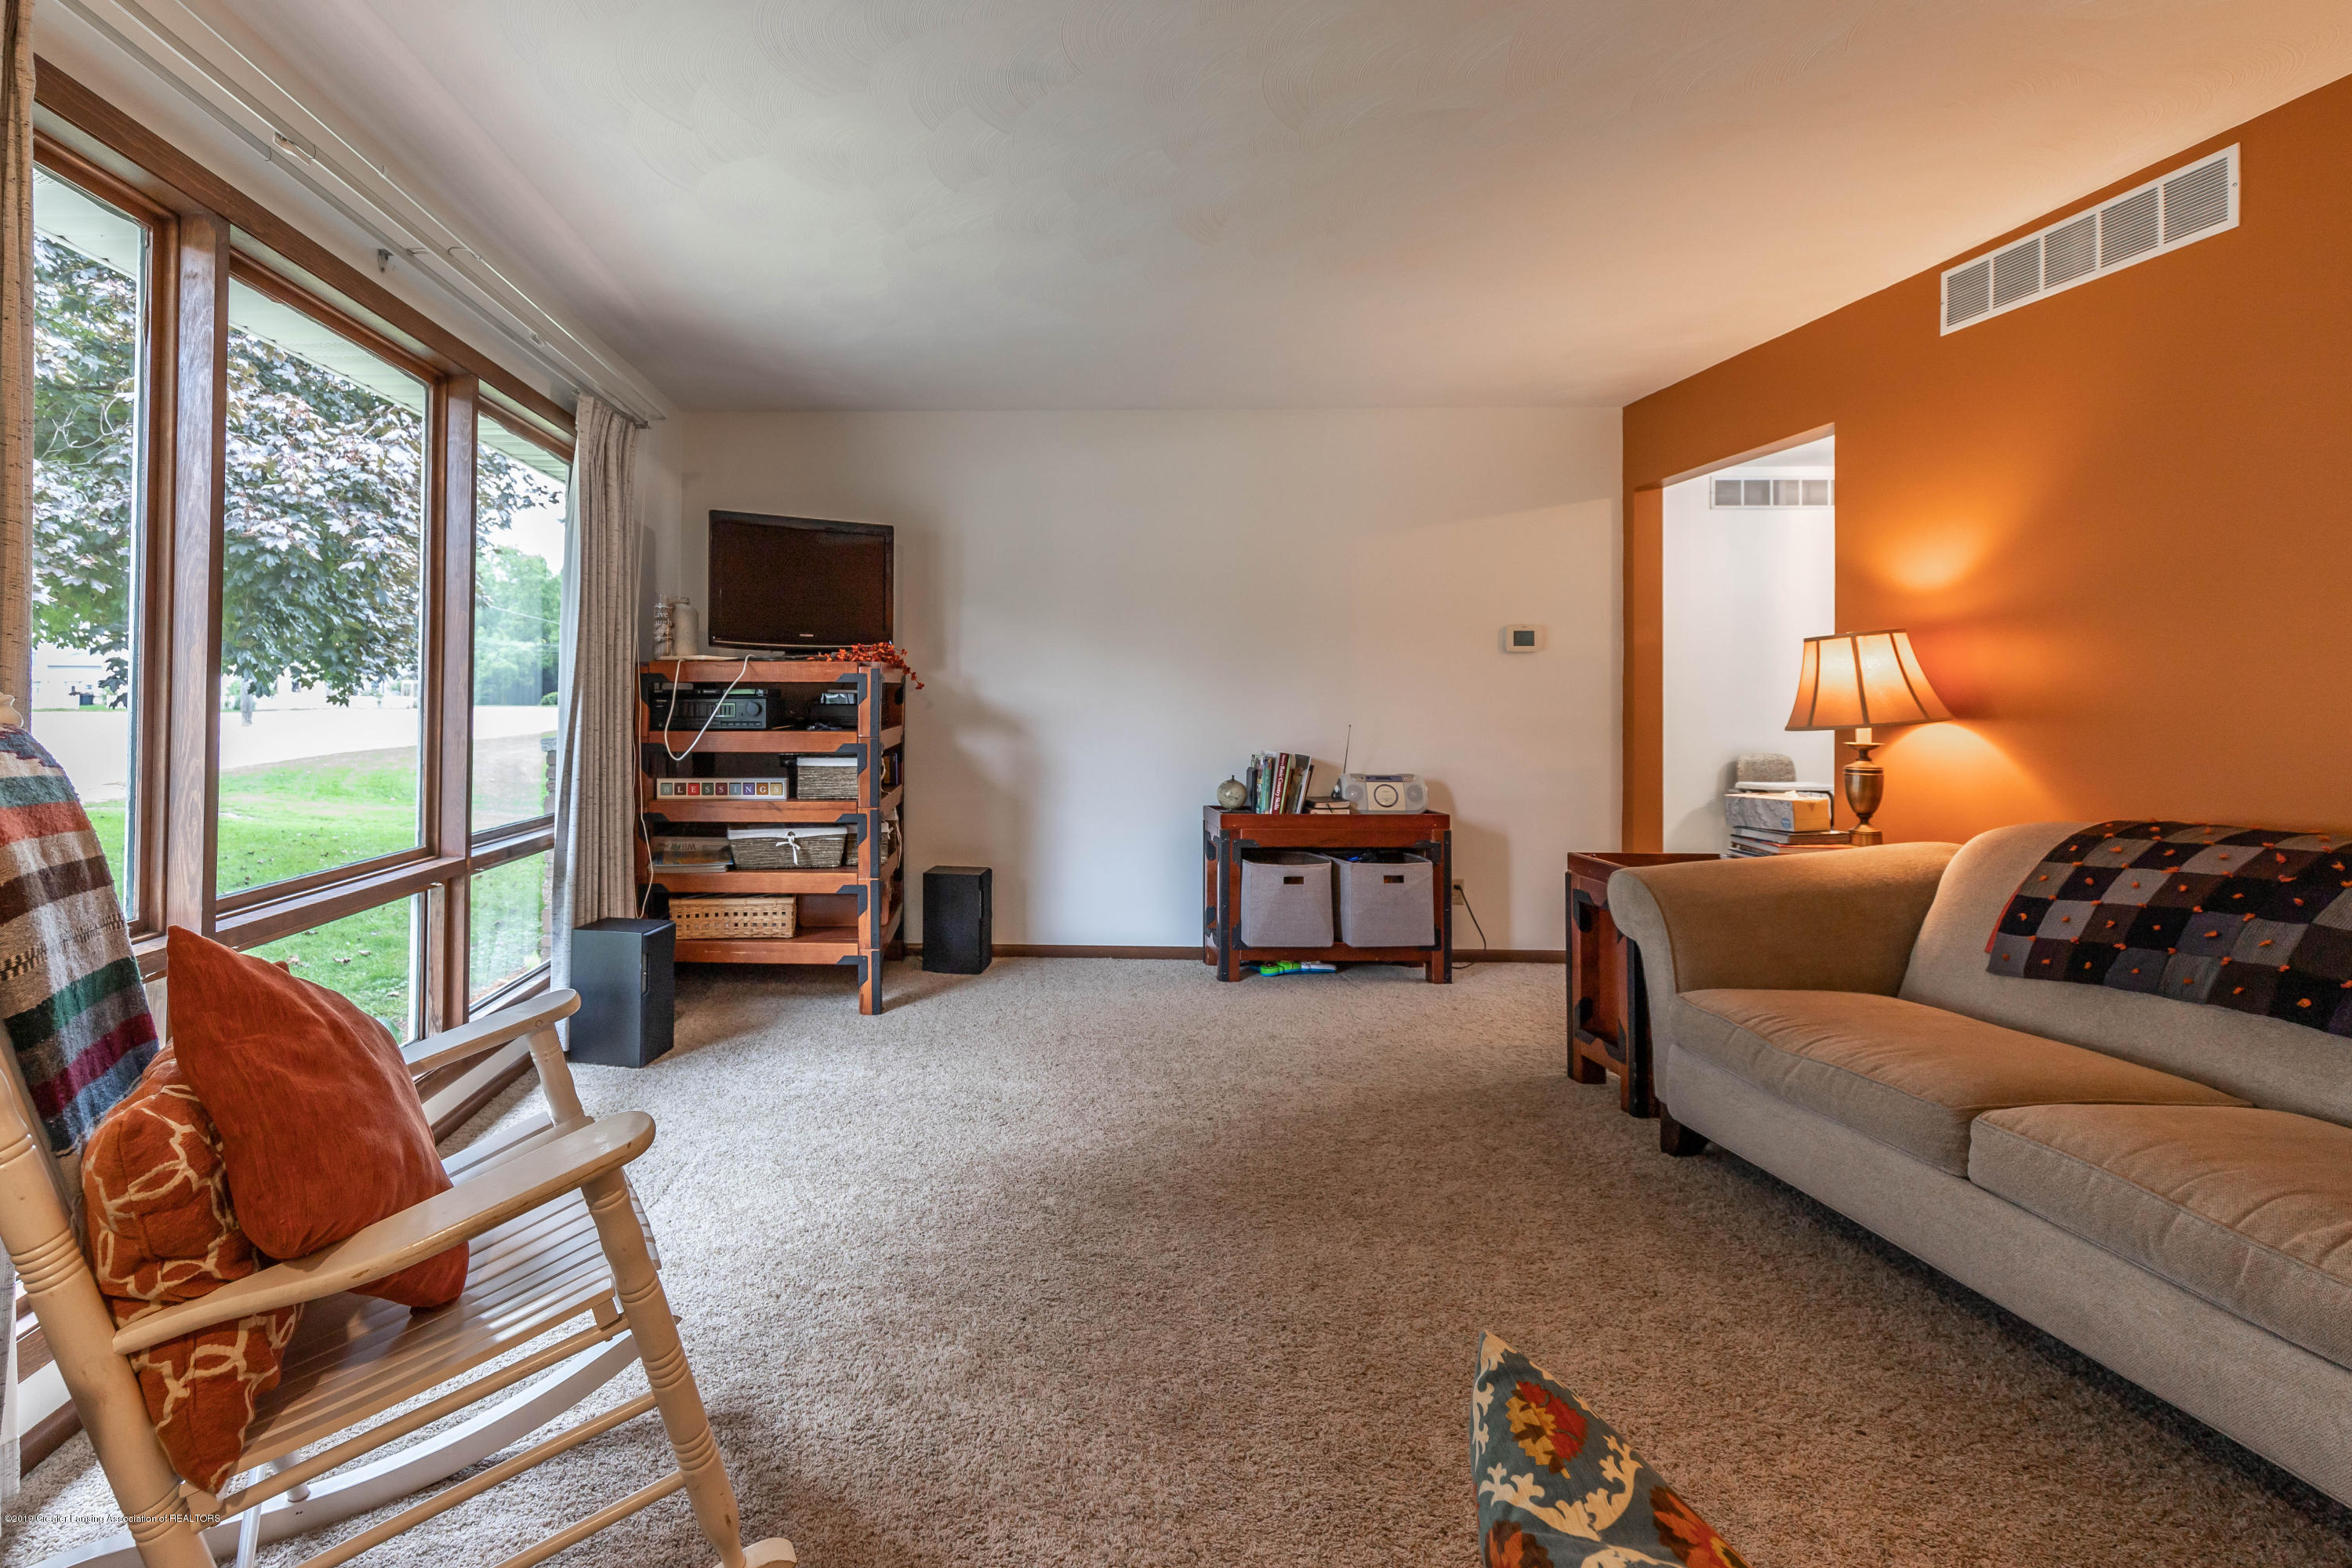 145 W Maple St - mapleliving2 (1 of 1) - 3